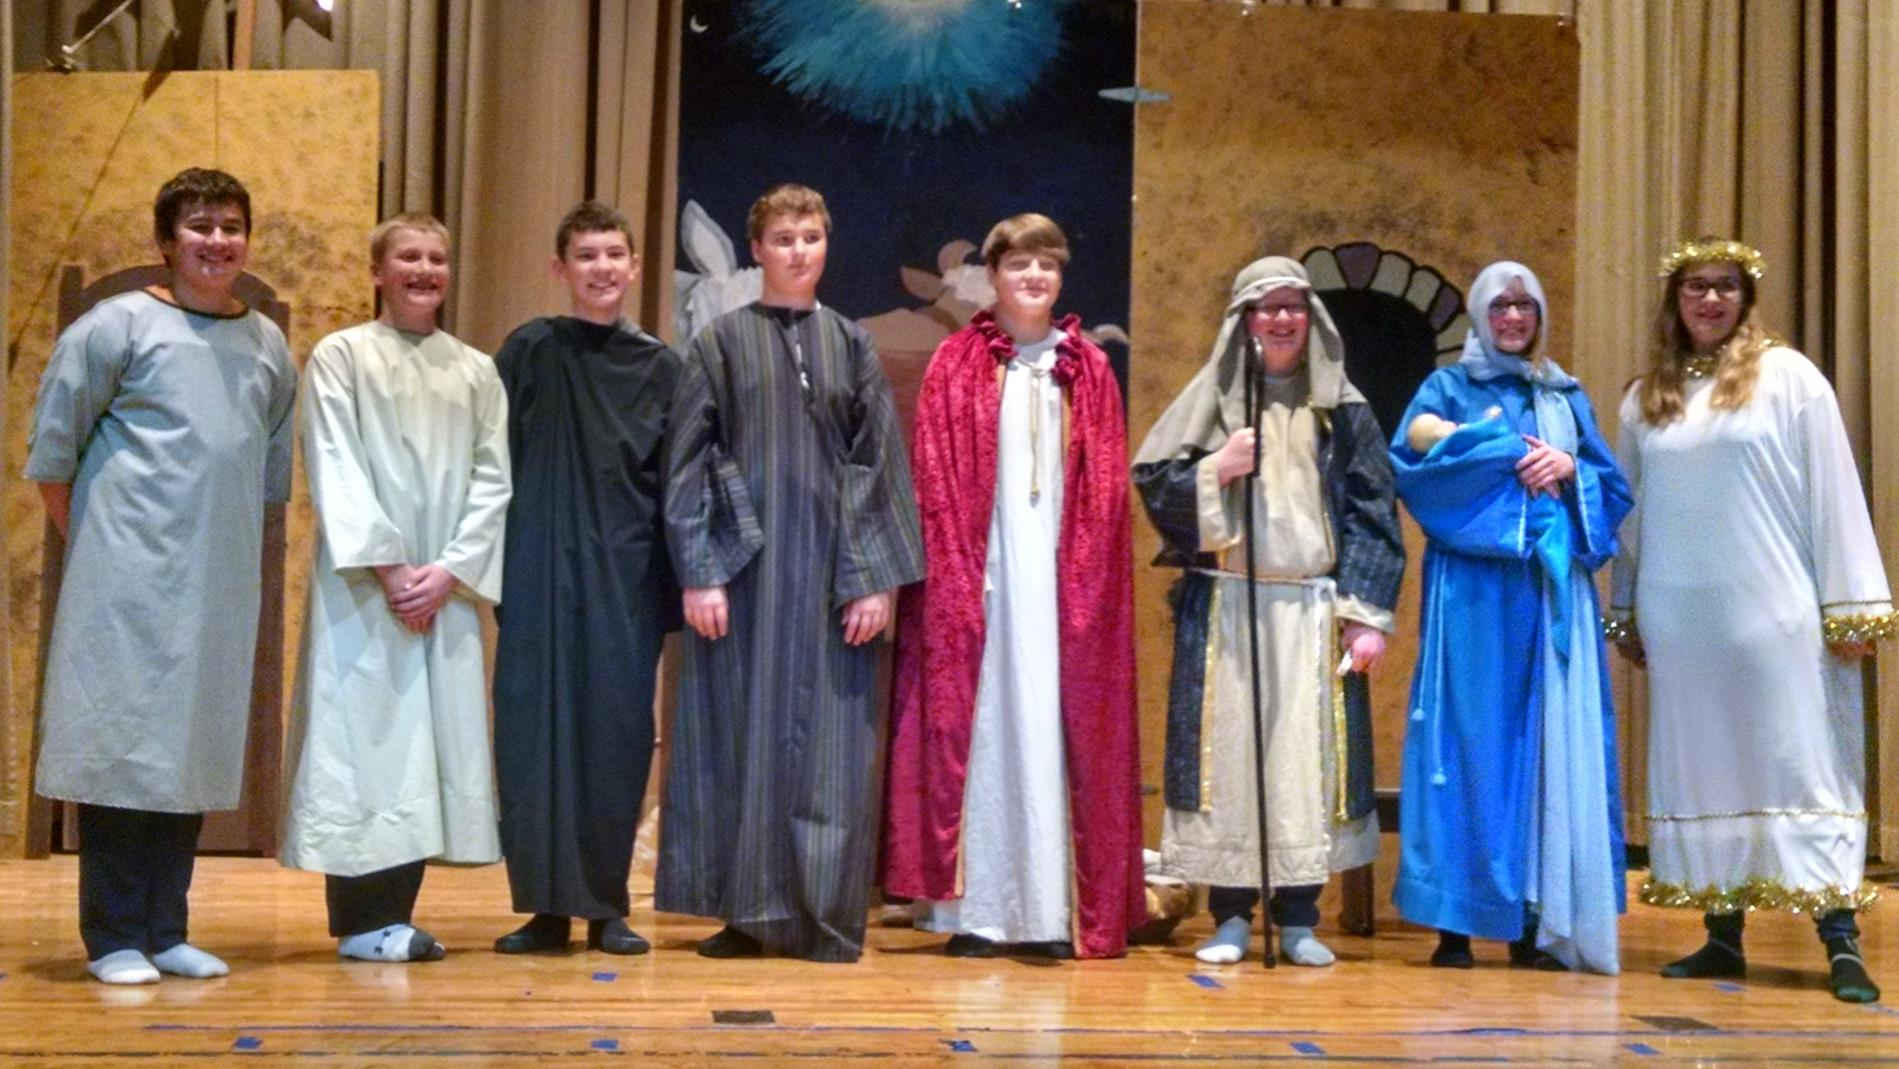 7th and 8th Grade Students Posing for Picture in Nativity Costumes